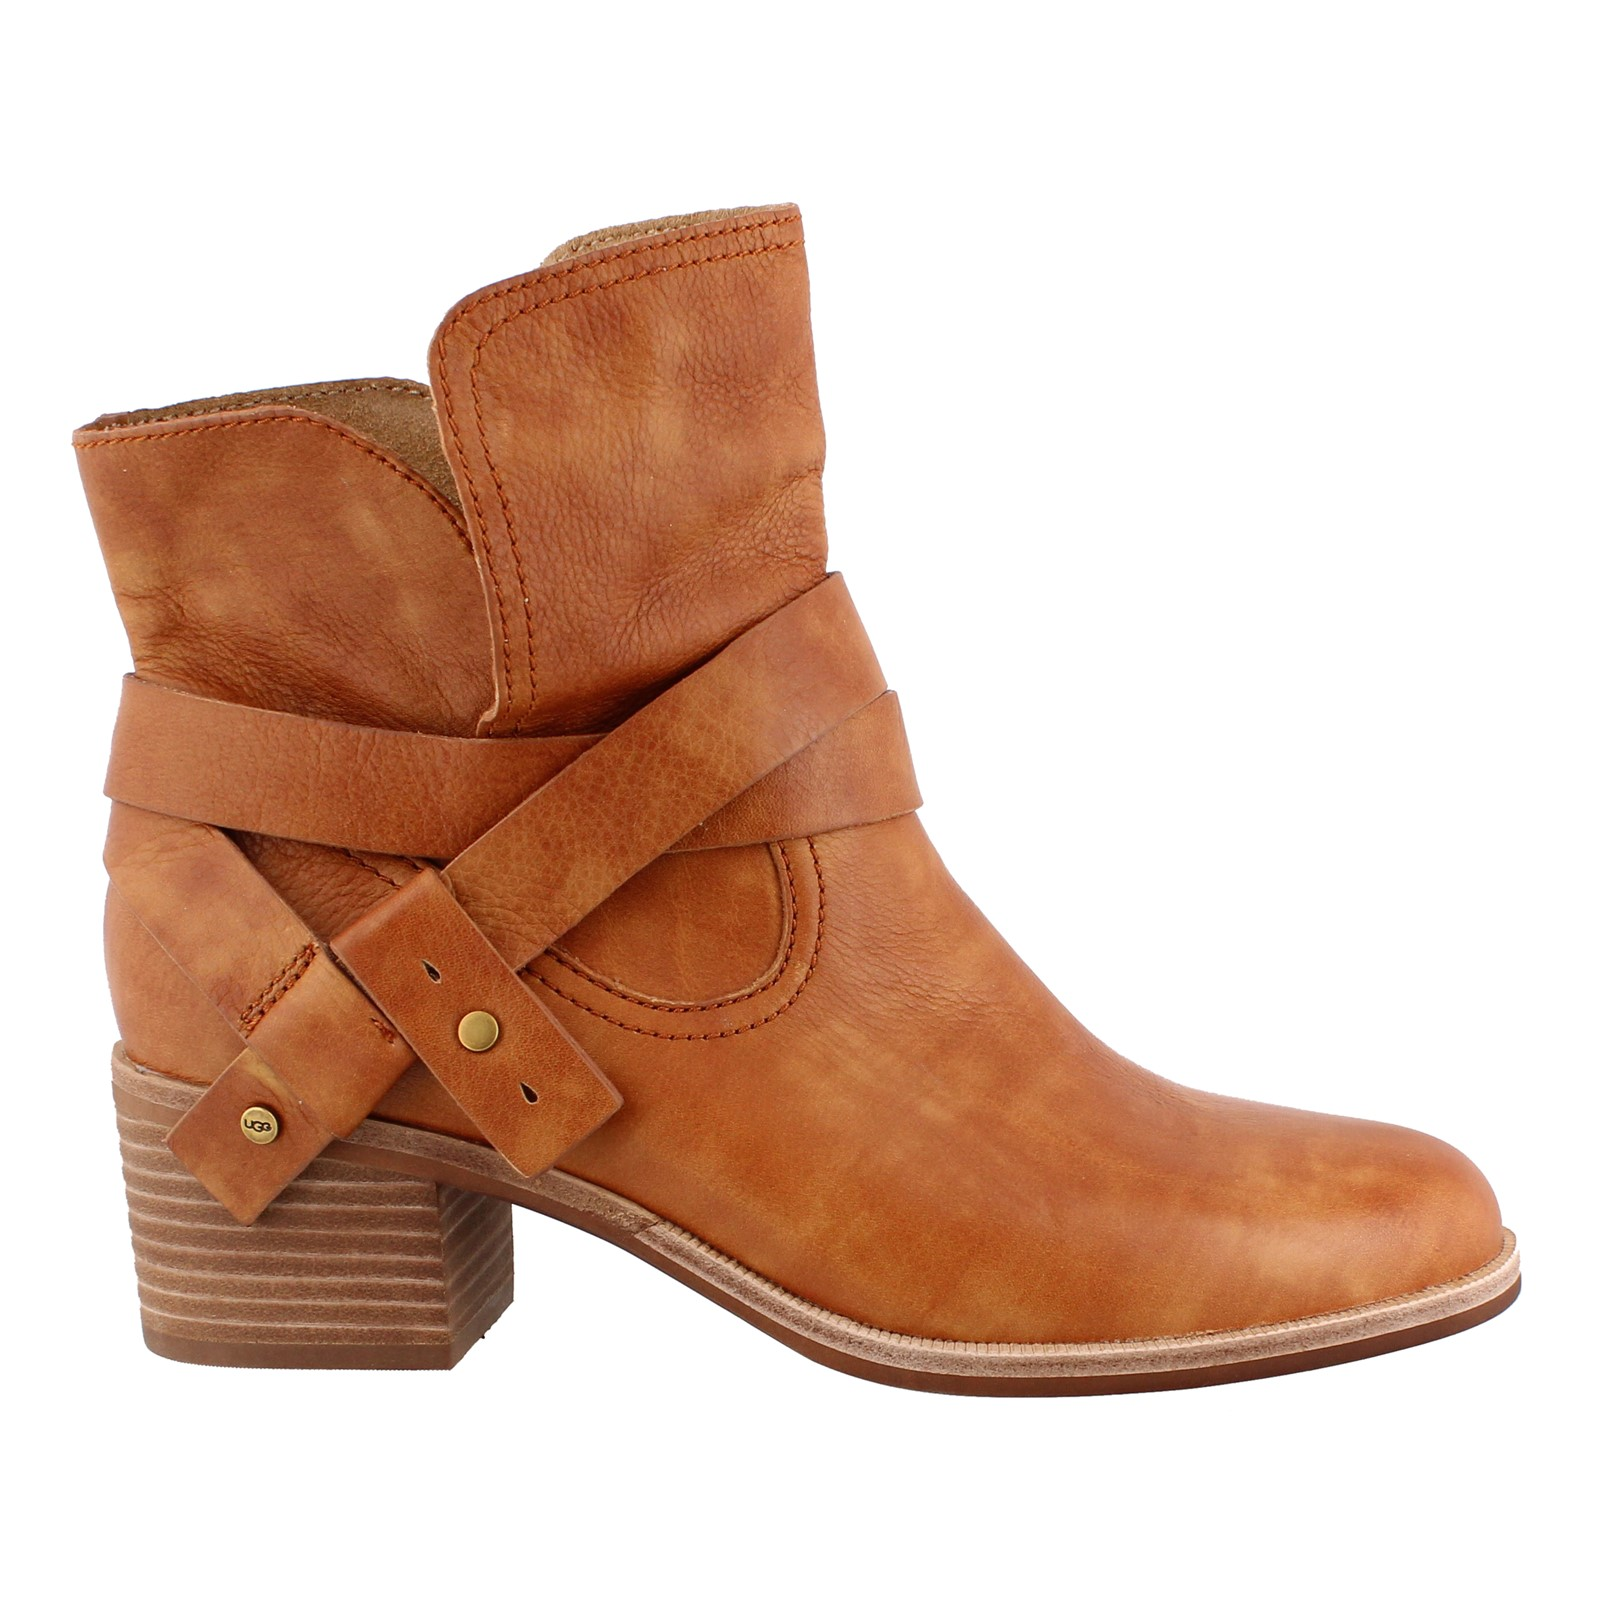 Women's Ugg, Elora Ankle Boots